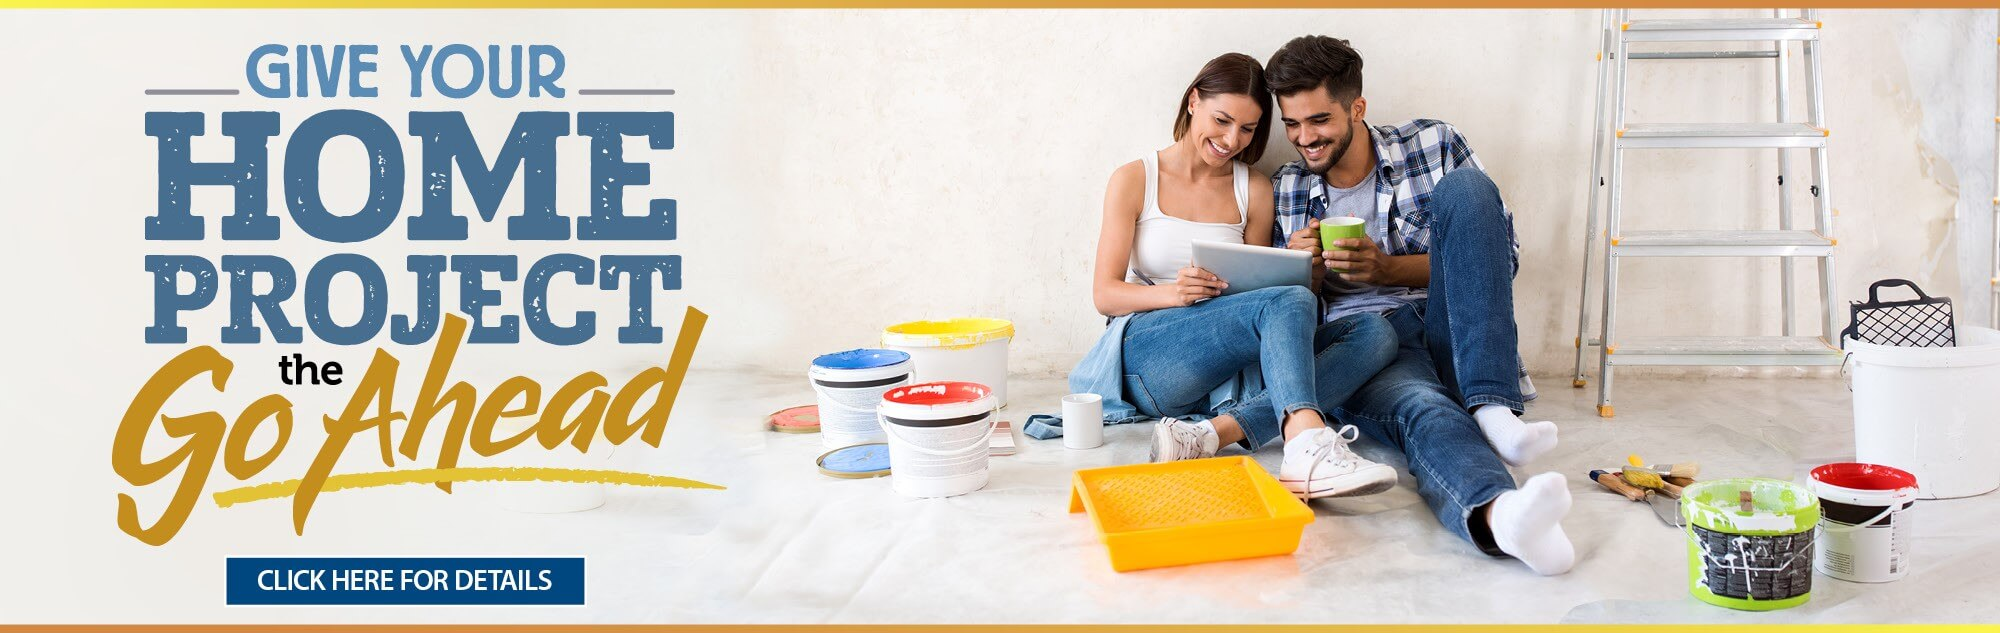 Give your home project the go ahead with a home improvement loan from First Florida.